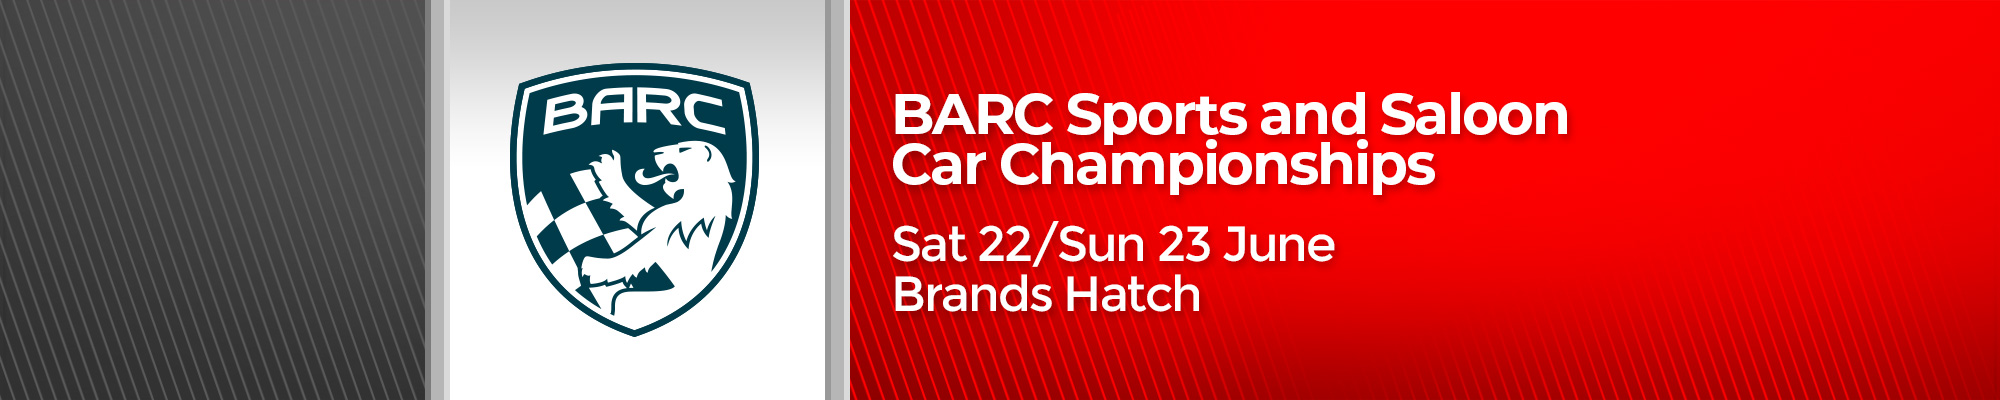 BARC Sports and Saloon Car Championships